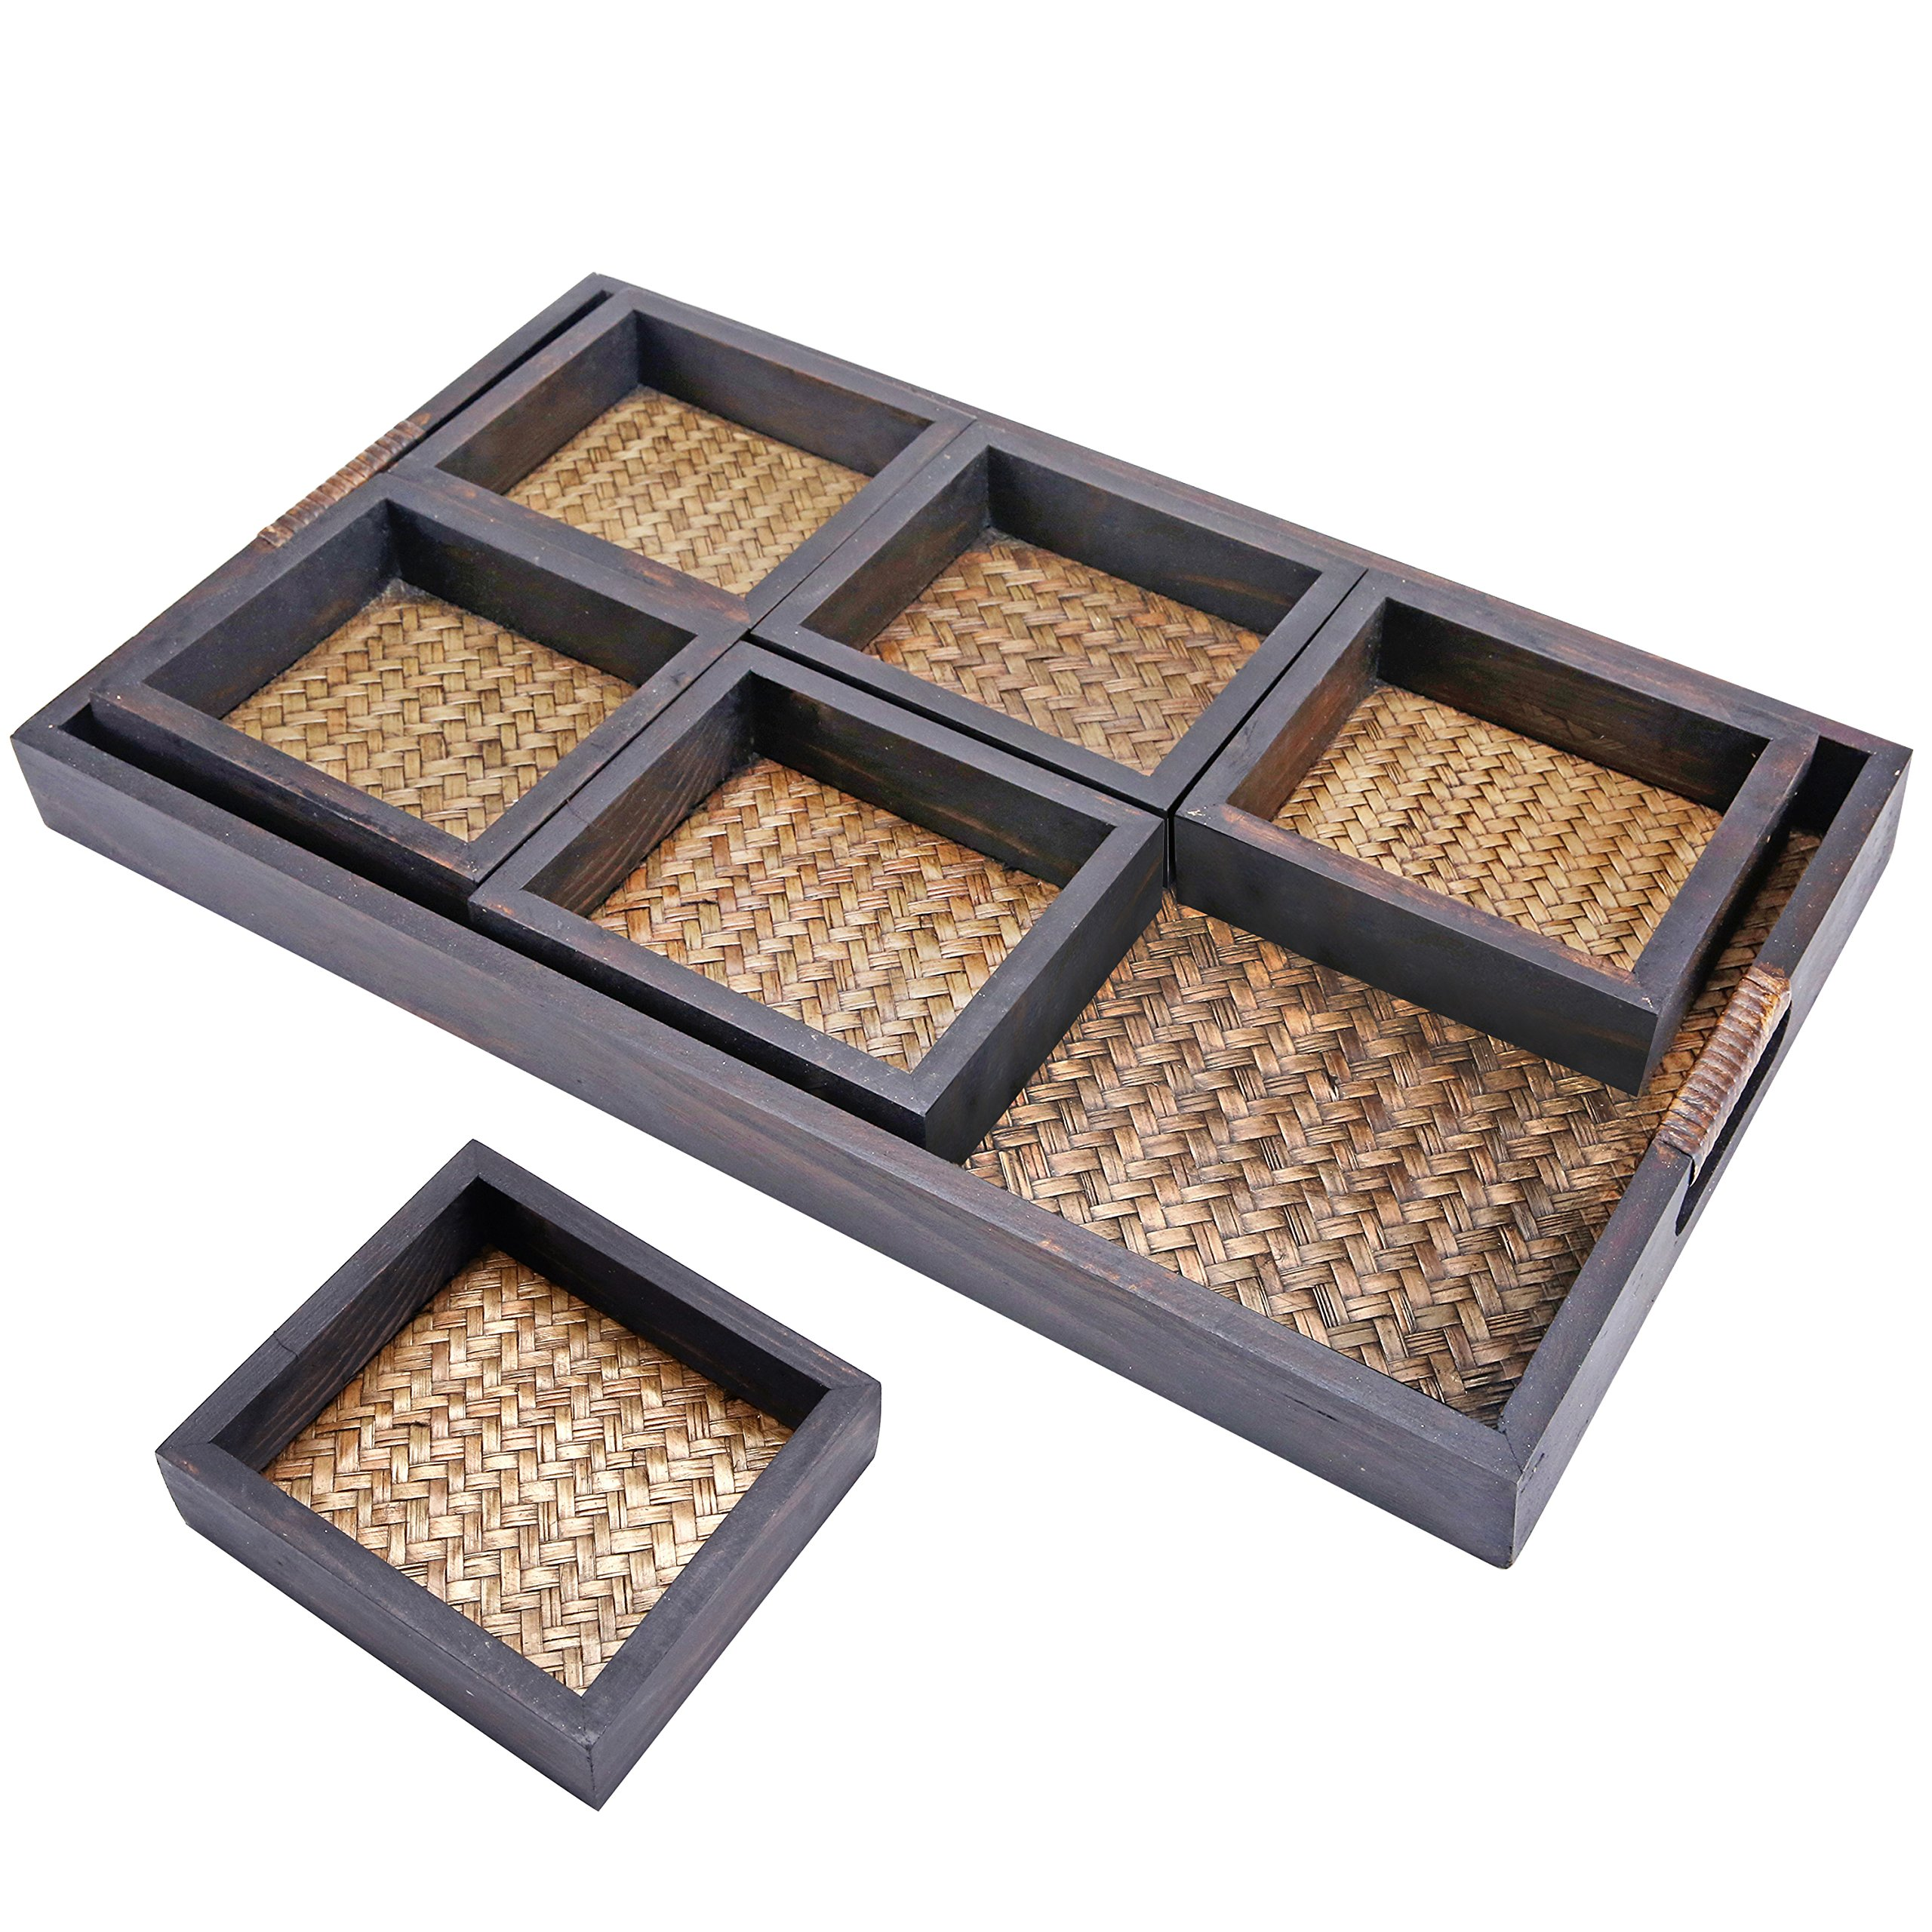 MyGift 7 Piece Flocked Nesting Mango Wood and Woven Rattan Jewelry Organizer Display Trays by MyGift (Image #1)